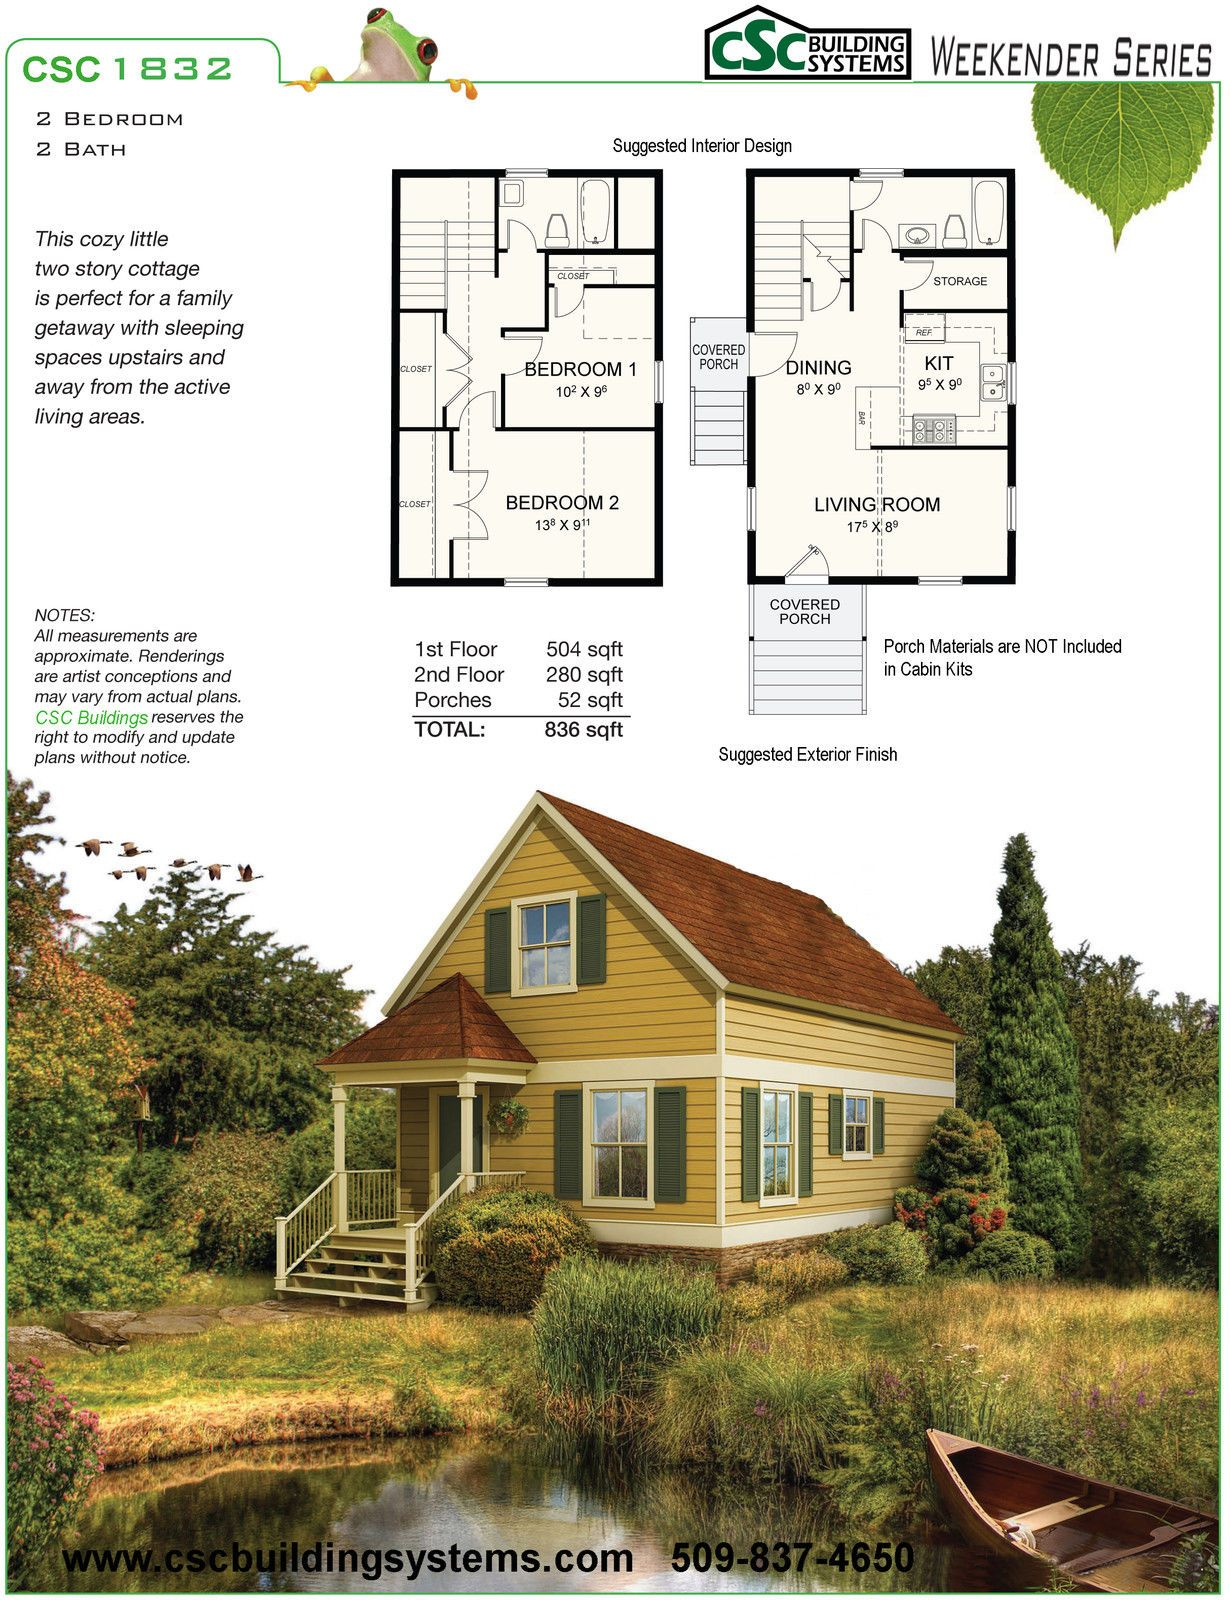 Steel Frame Cabin Kit-2 Bedroom, 2 Bath, 836 sqft - FRAME ONLY | LPR ...